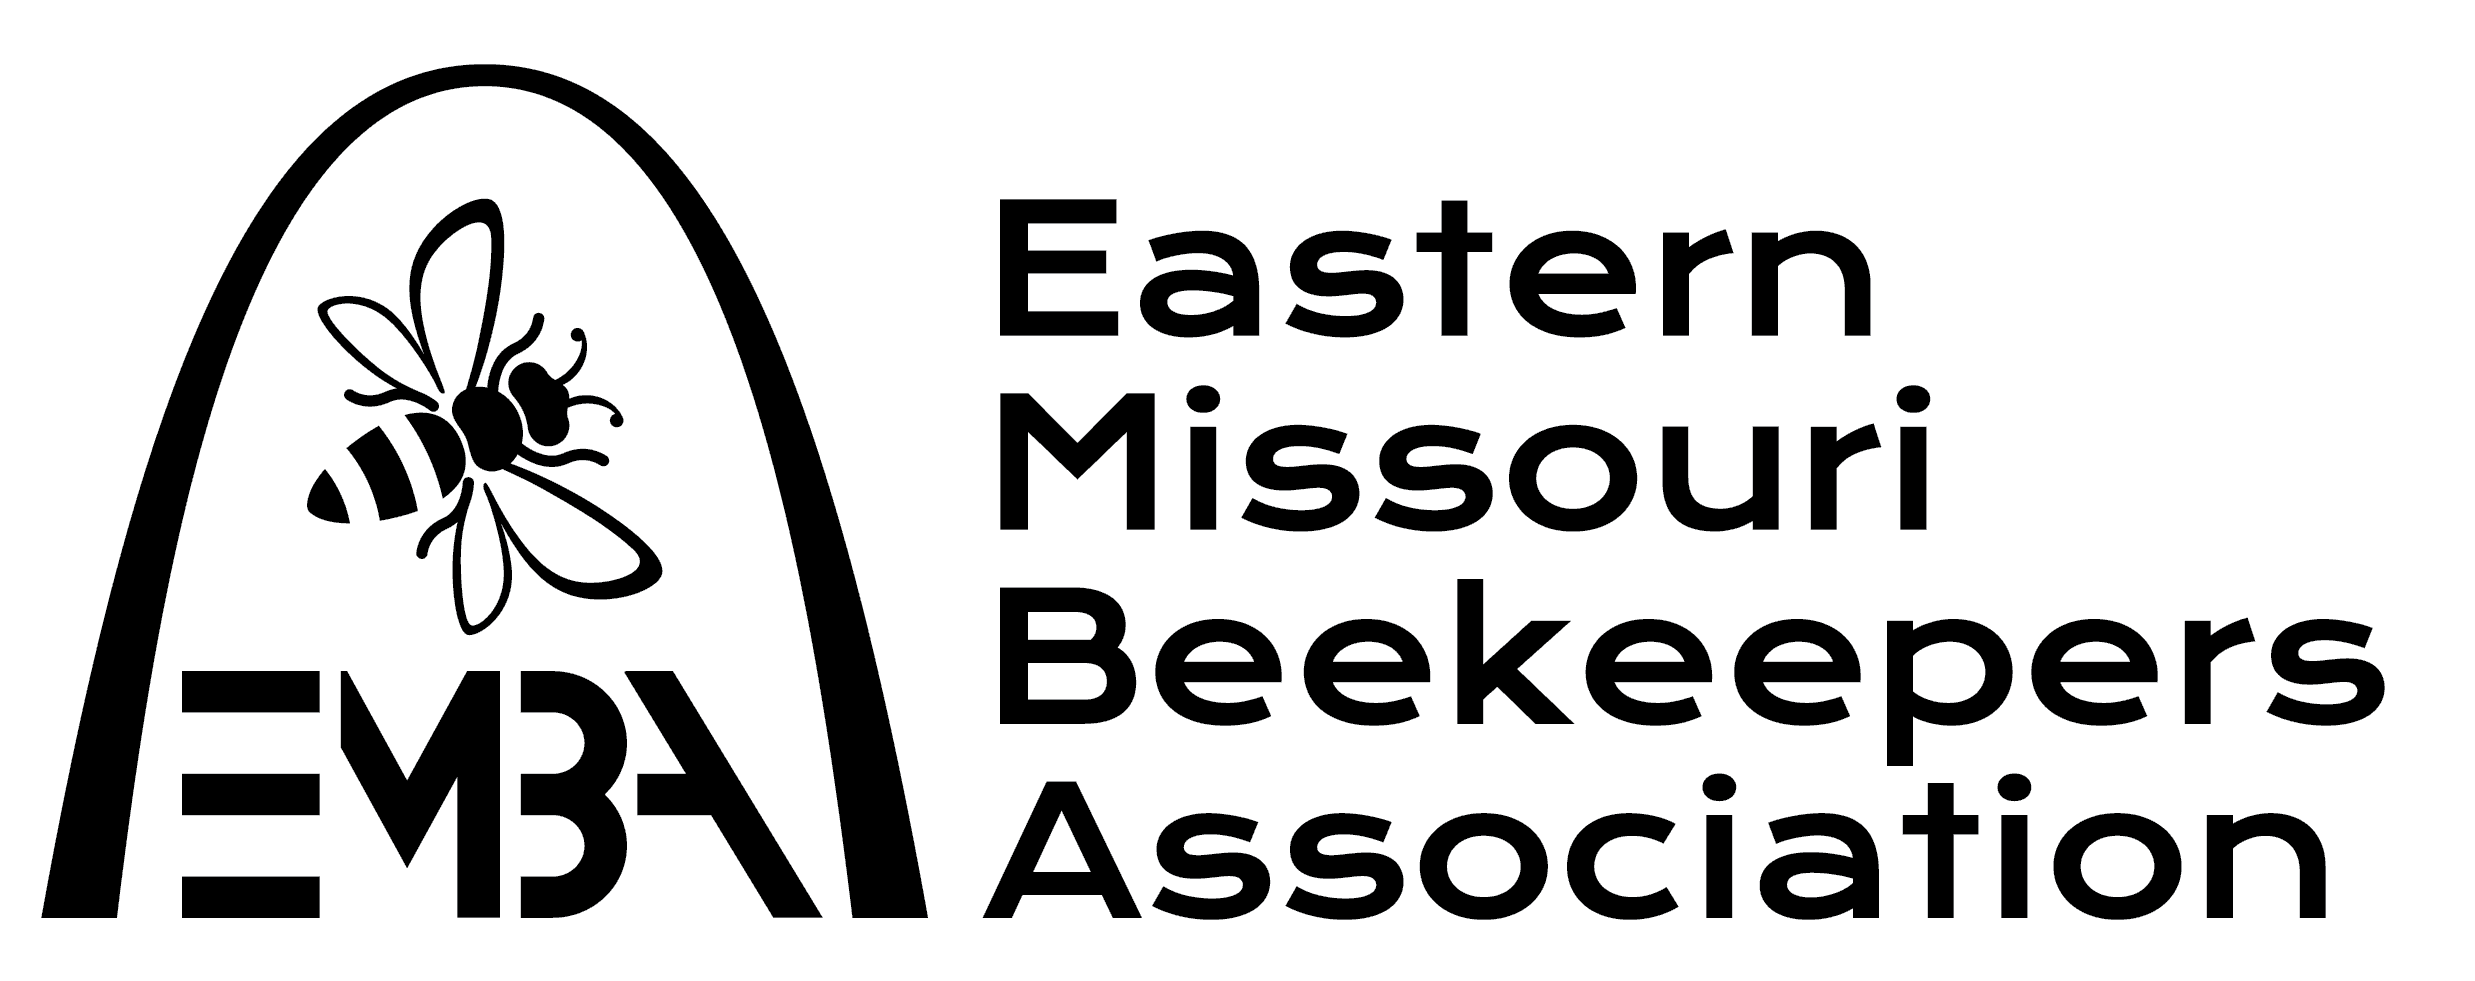 CATCH THE BUZZ – Eastern Missouri Beekeepers Virtual 14th Annual Workshop